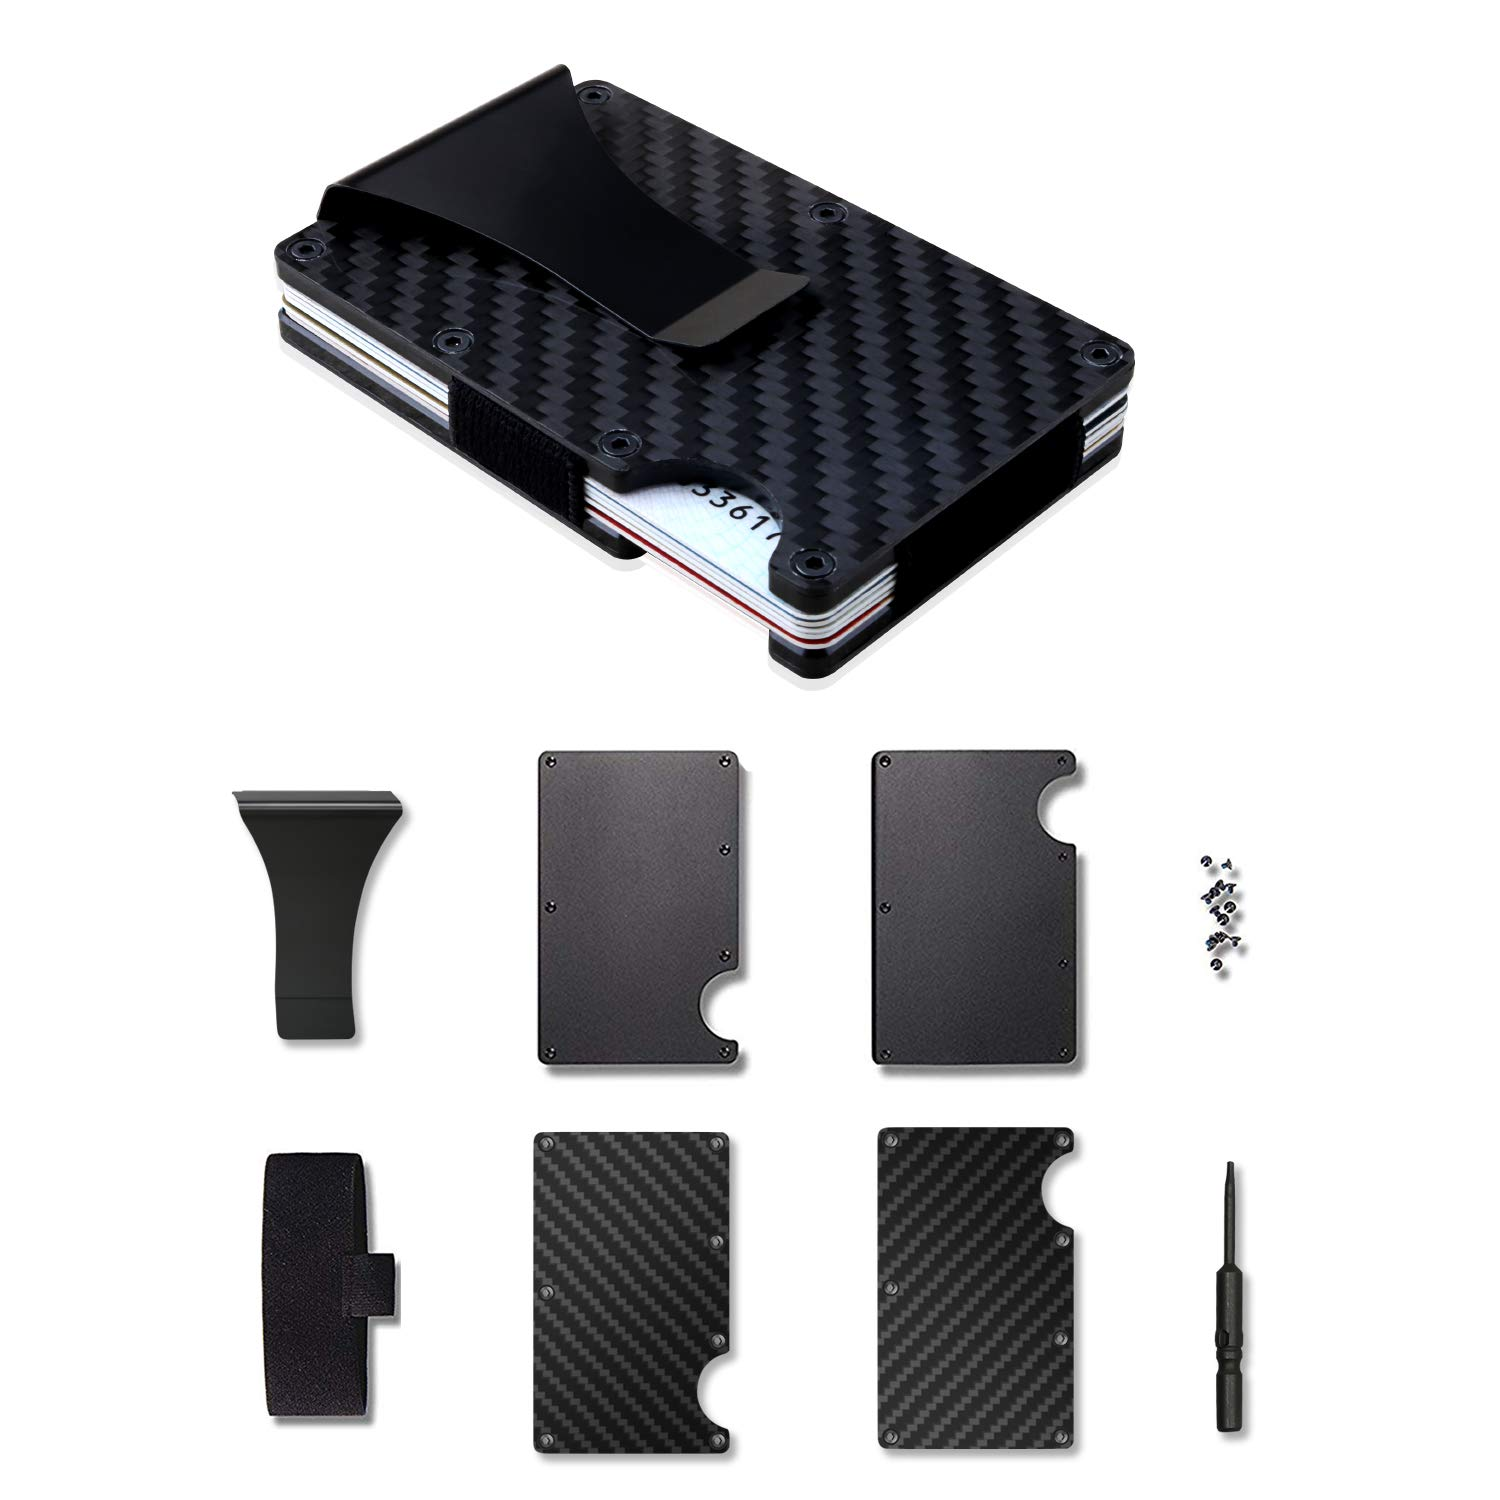 Carbon Fiber Wallet + Business Card Case Gift Set - RFID Blocking Slim Money Clip and Business Card Holder - Minimalist Credit Card Holder Organizer Protector Front Pocket Metal Money Clip for Men